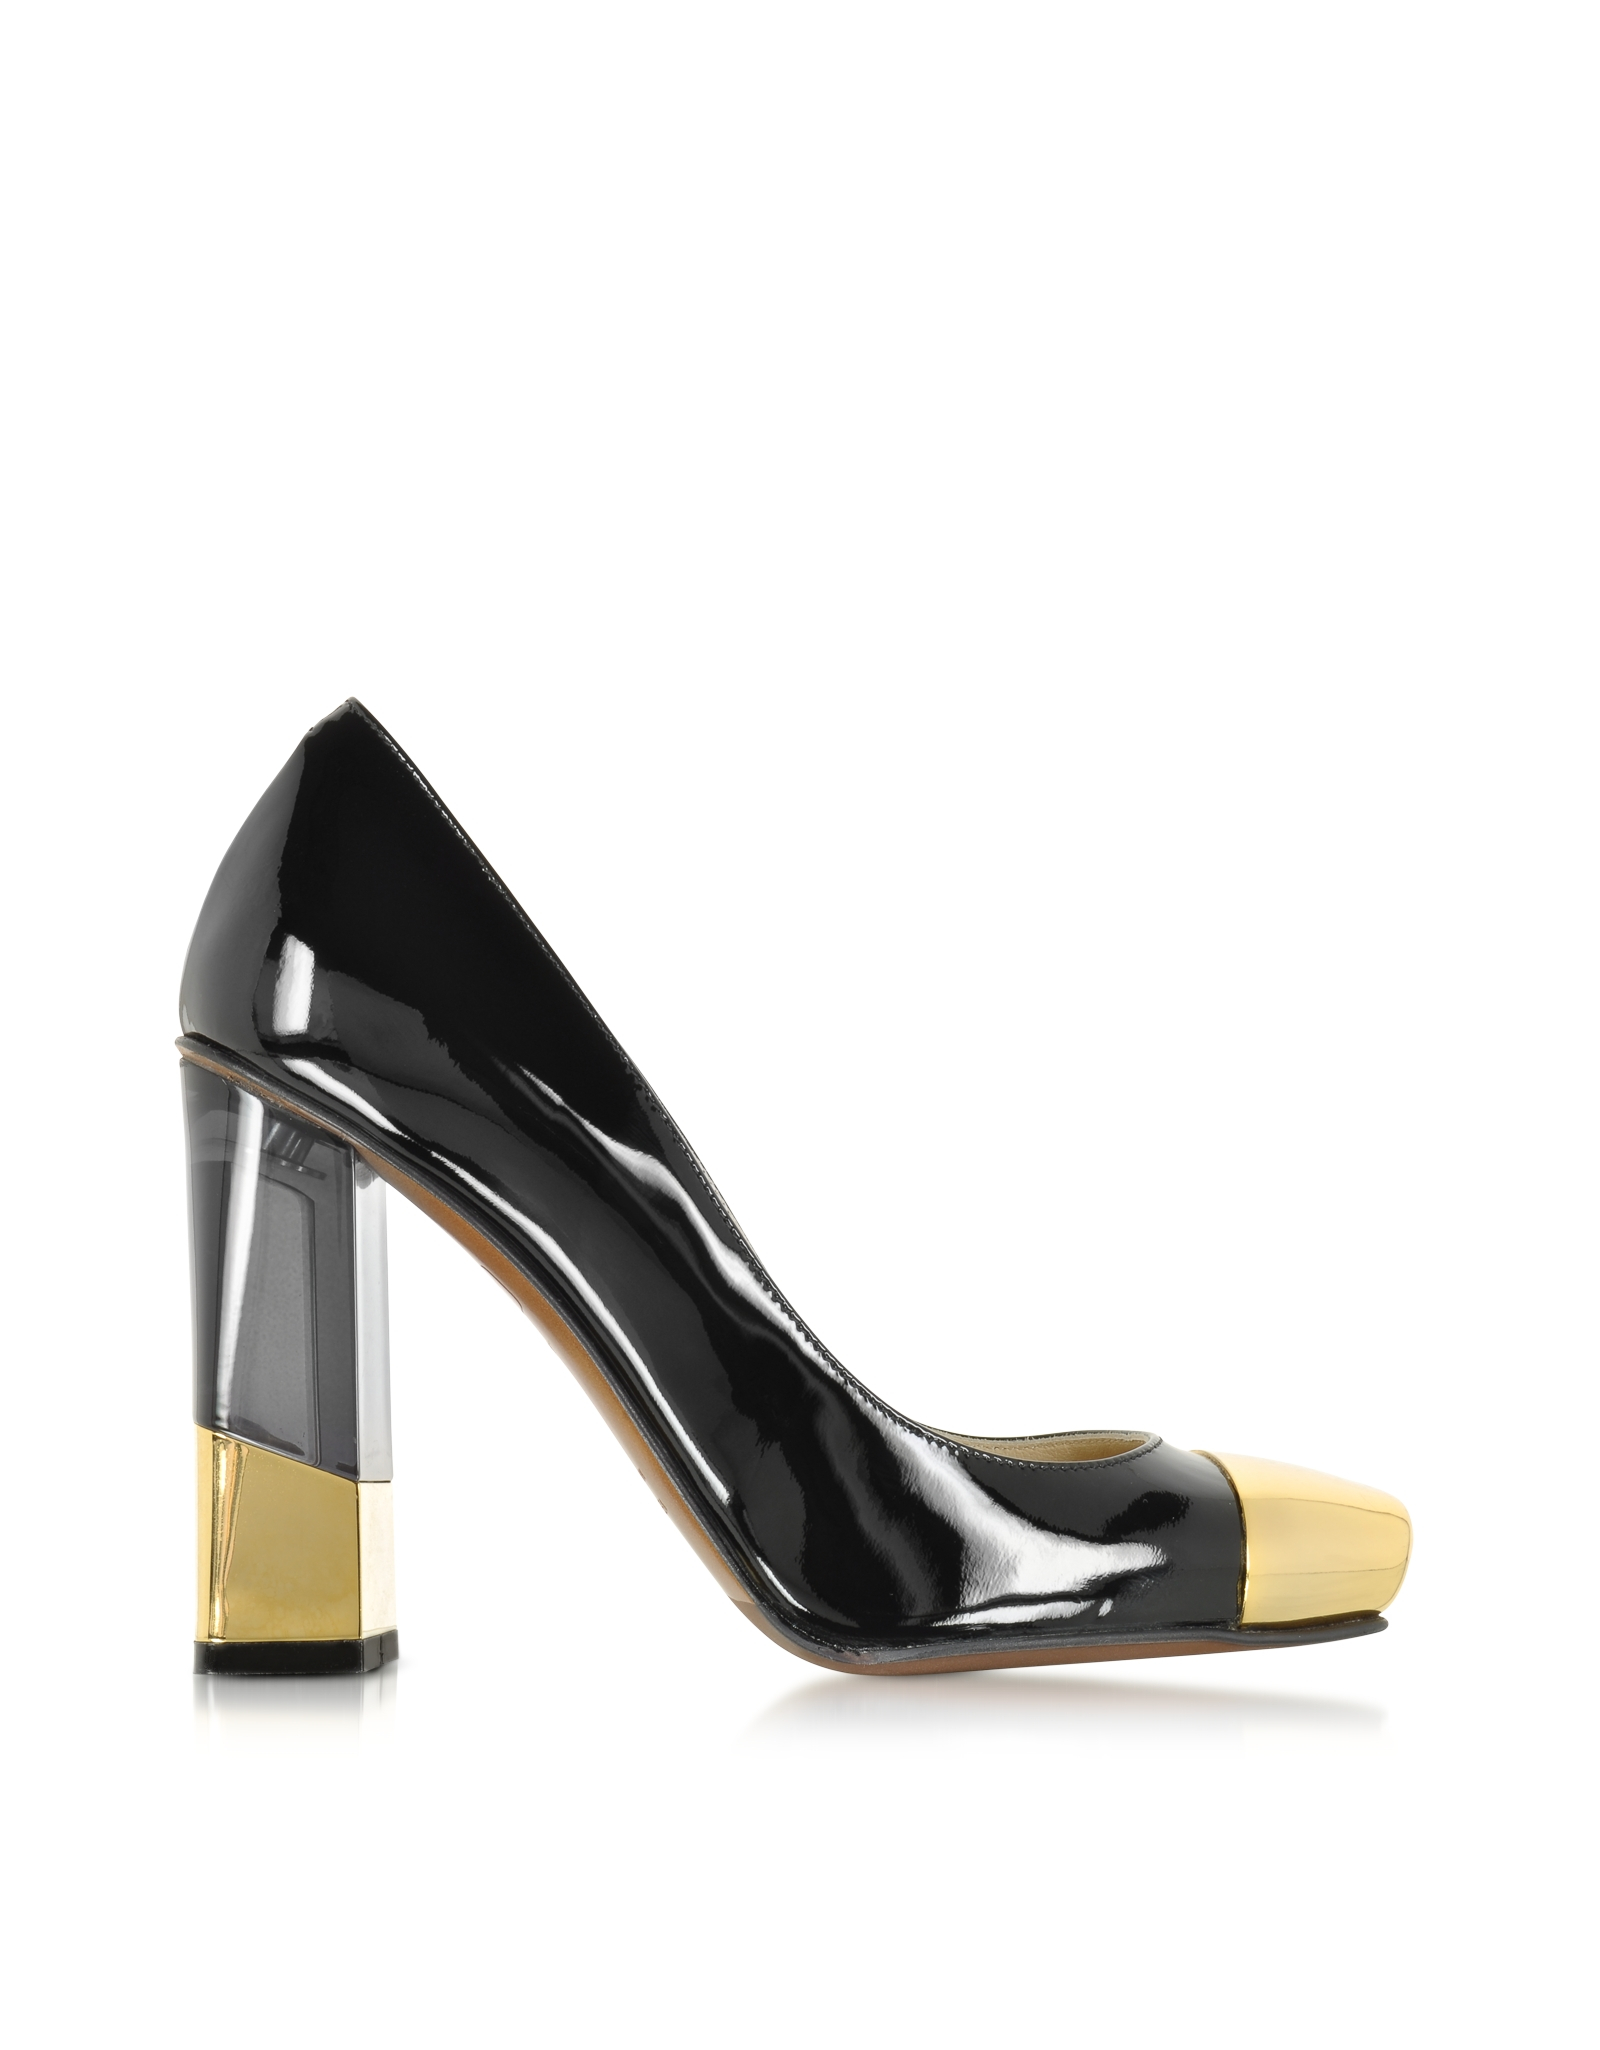 Shop women's designer pumps, heels & platforms on the official Michael Kors site. Receive complimentary shipping & returns on your order.